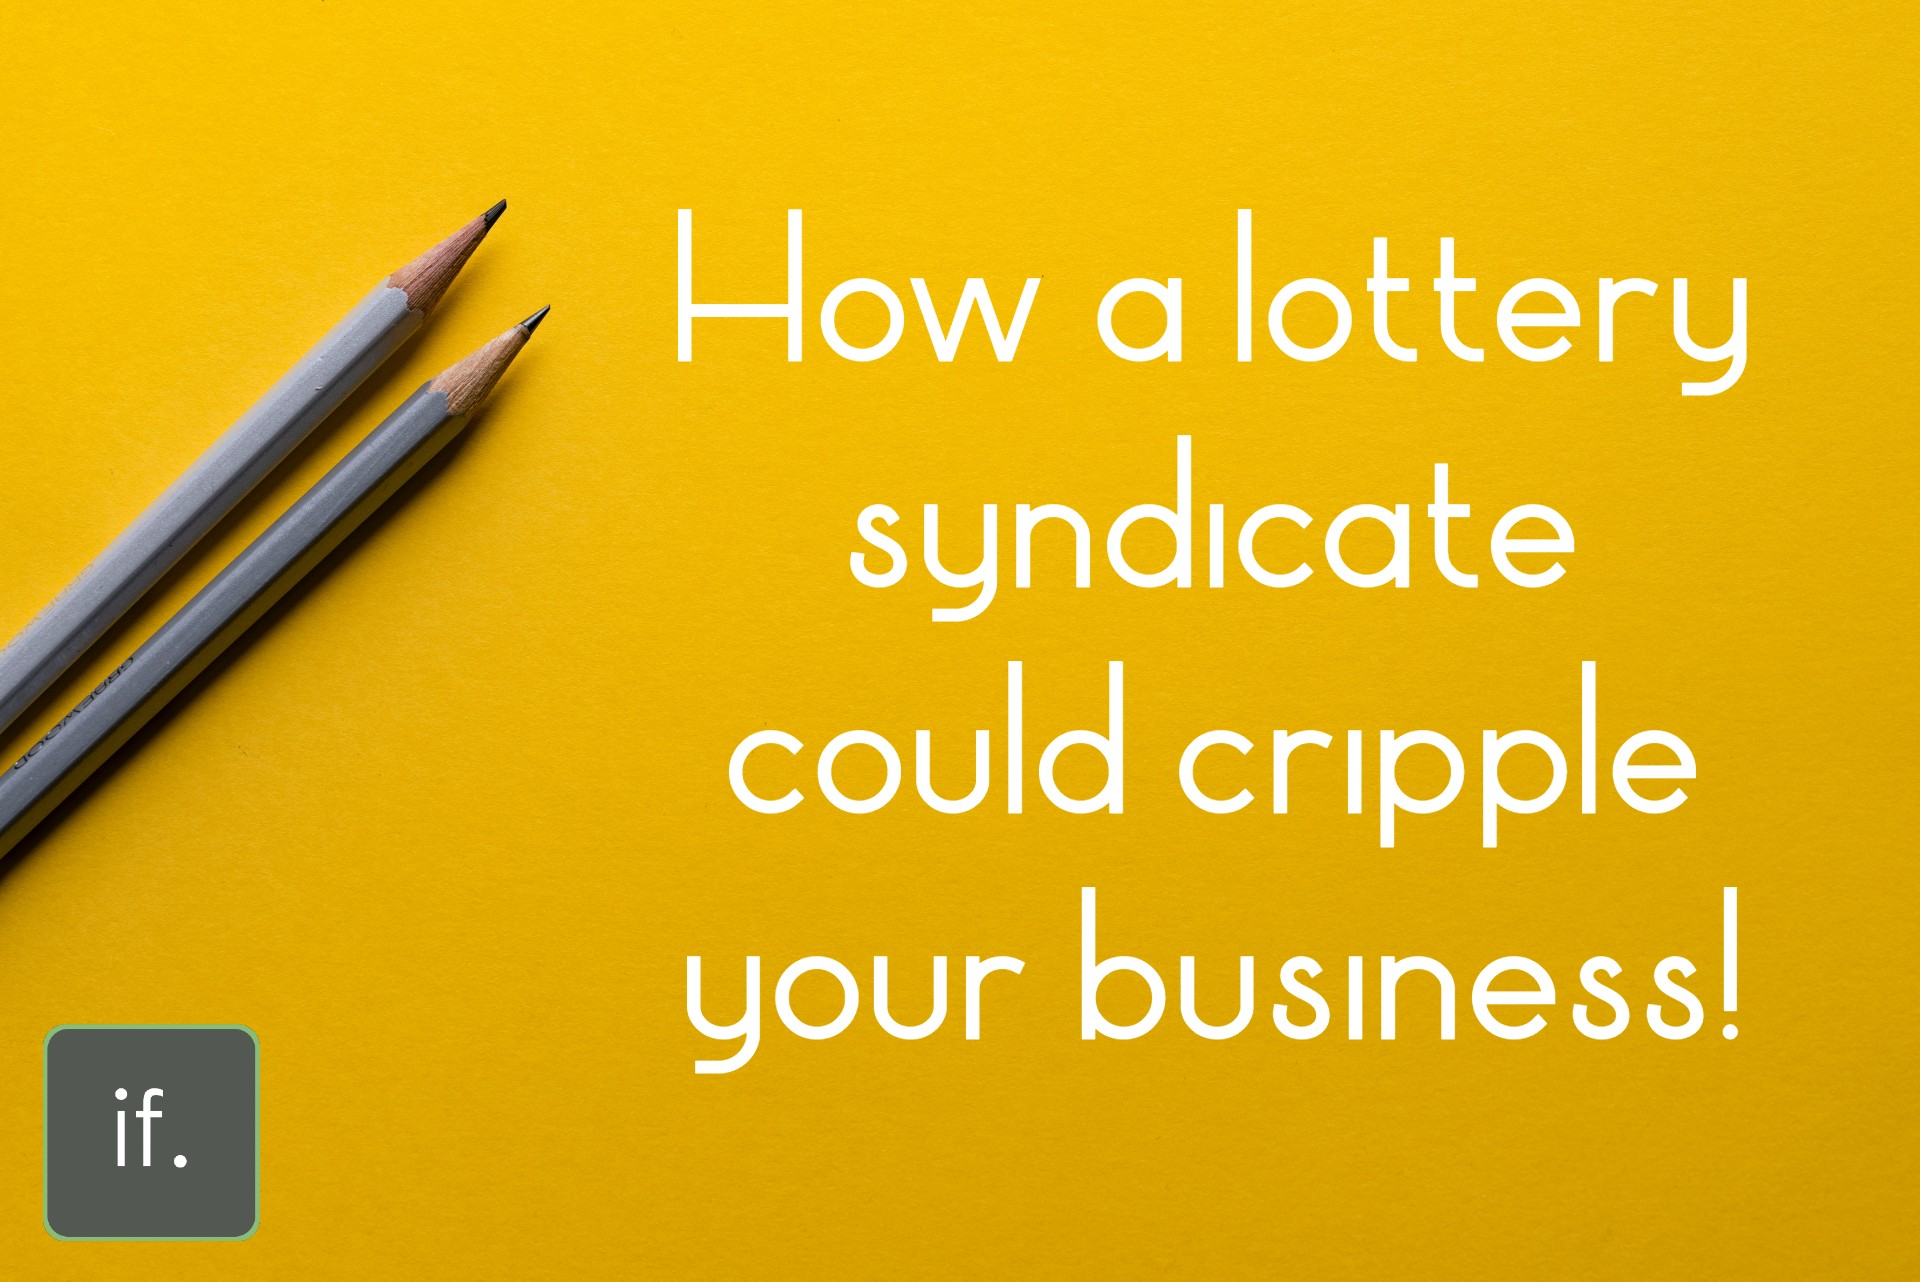 A Lottery Win could cripple your Business